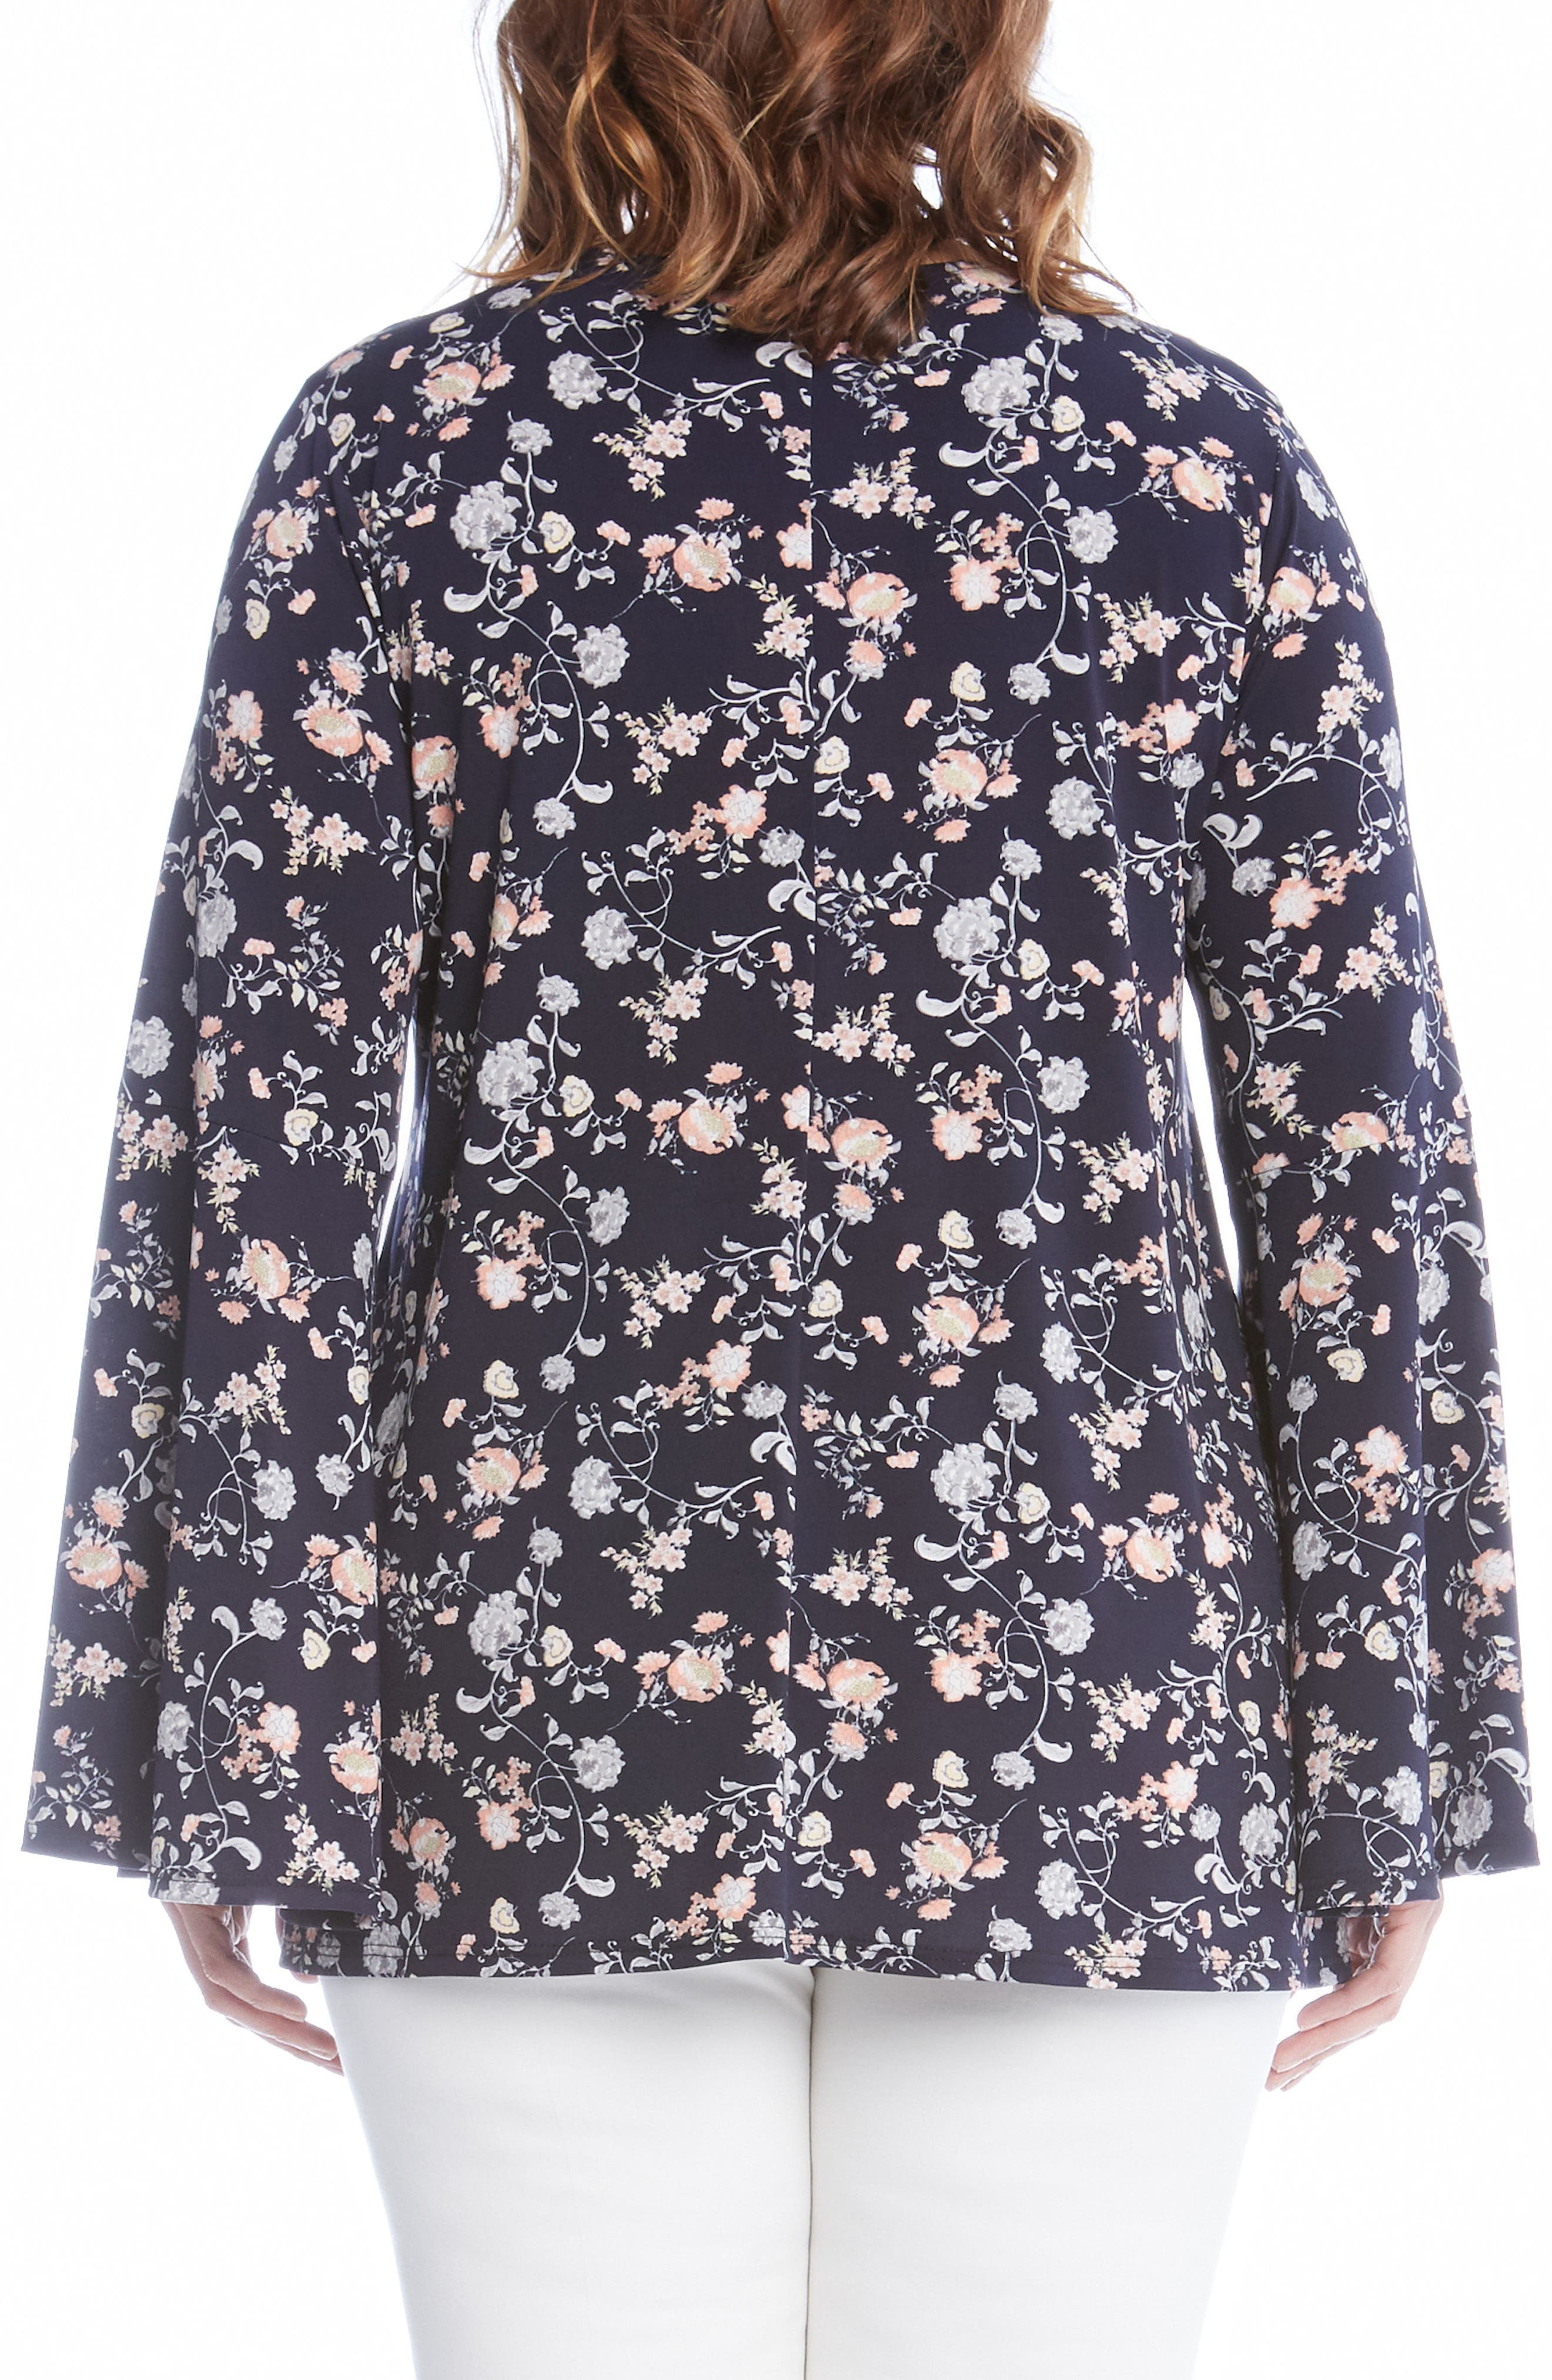 Kane Kane Bell Sleeve Floral Top,                             Alternate thumbnail 2, color,                             460